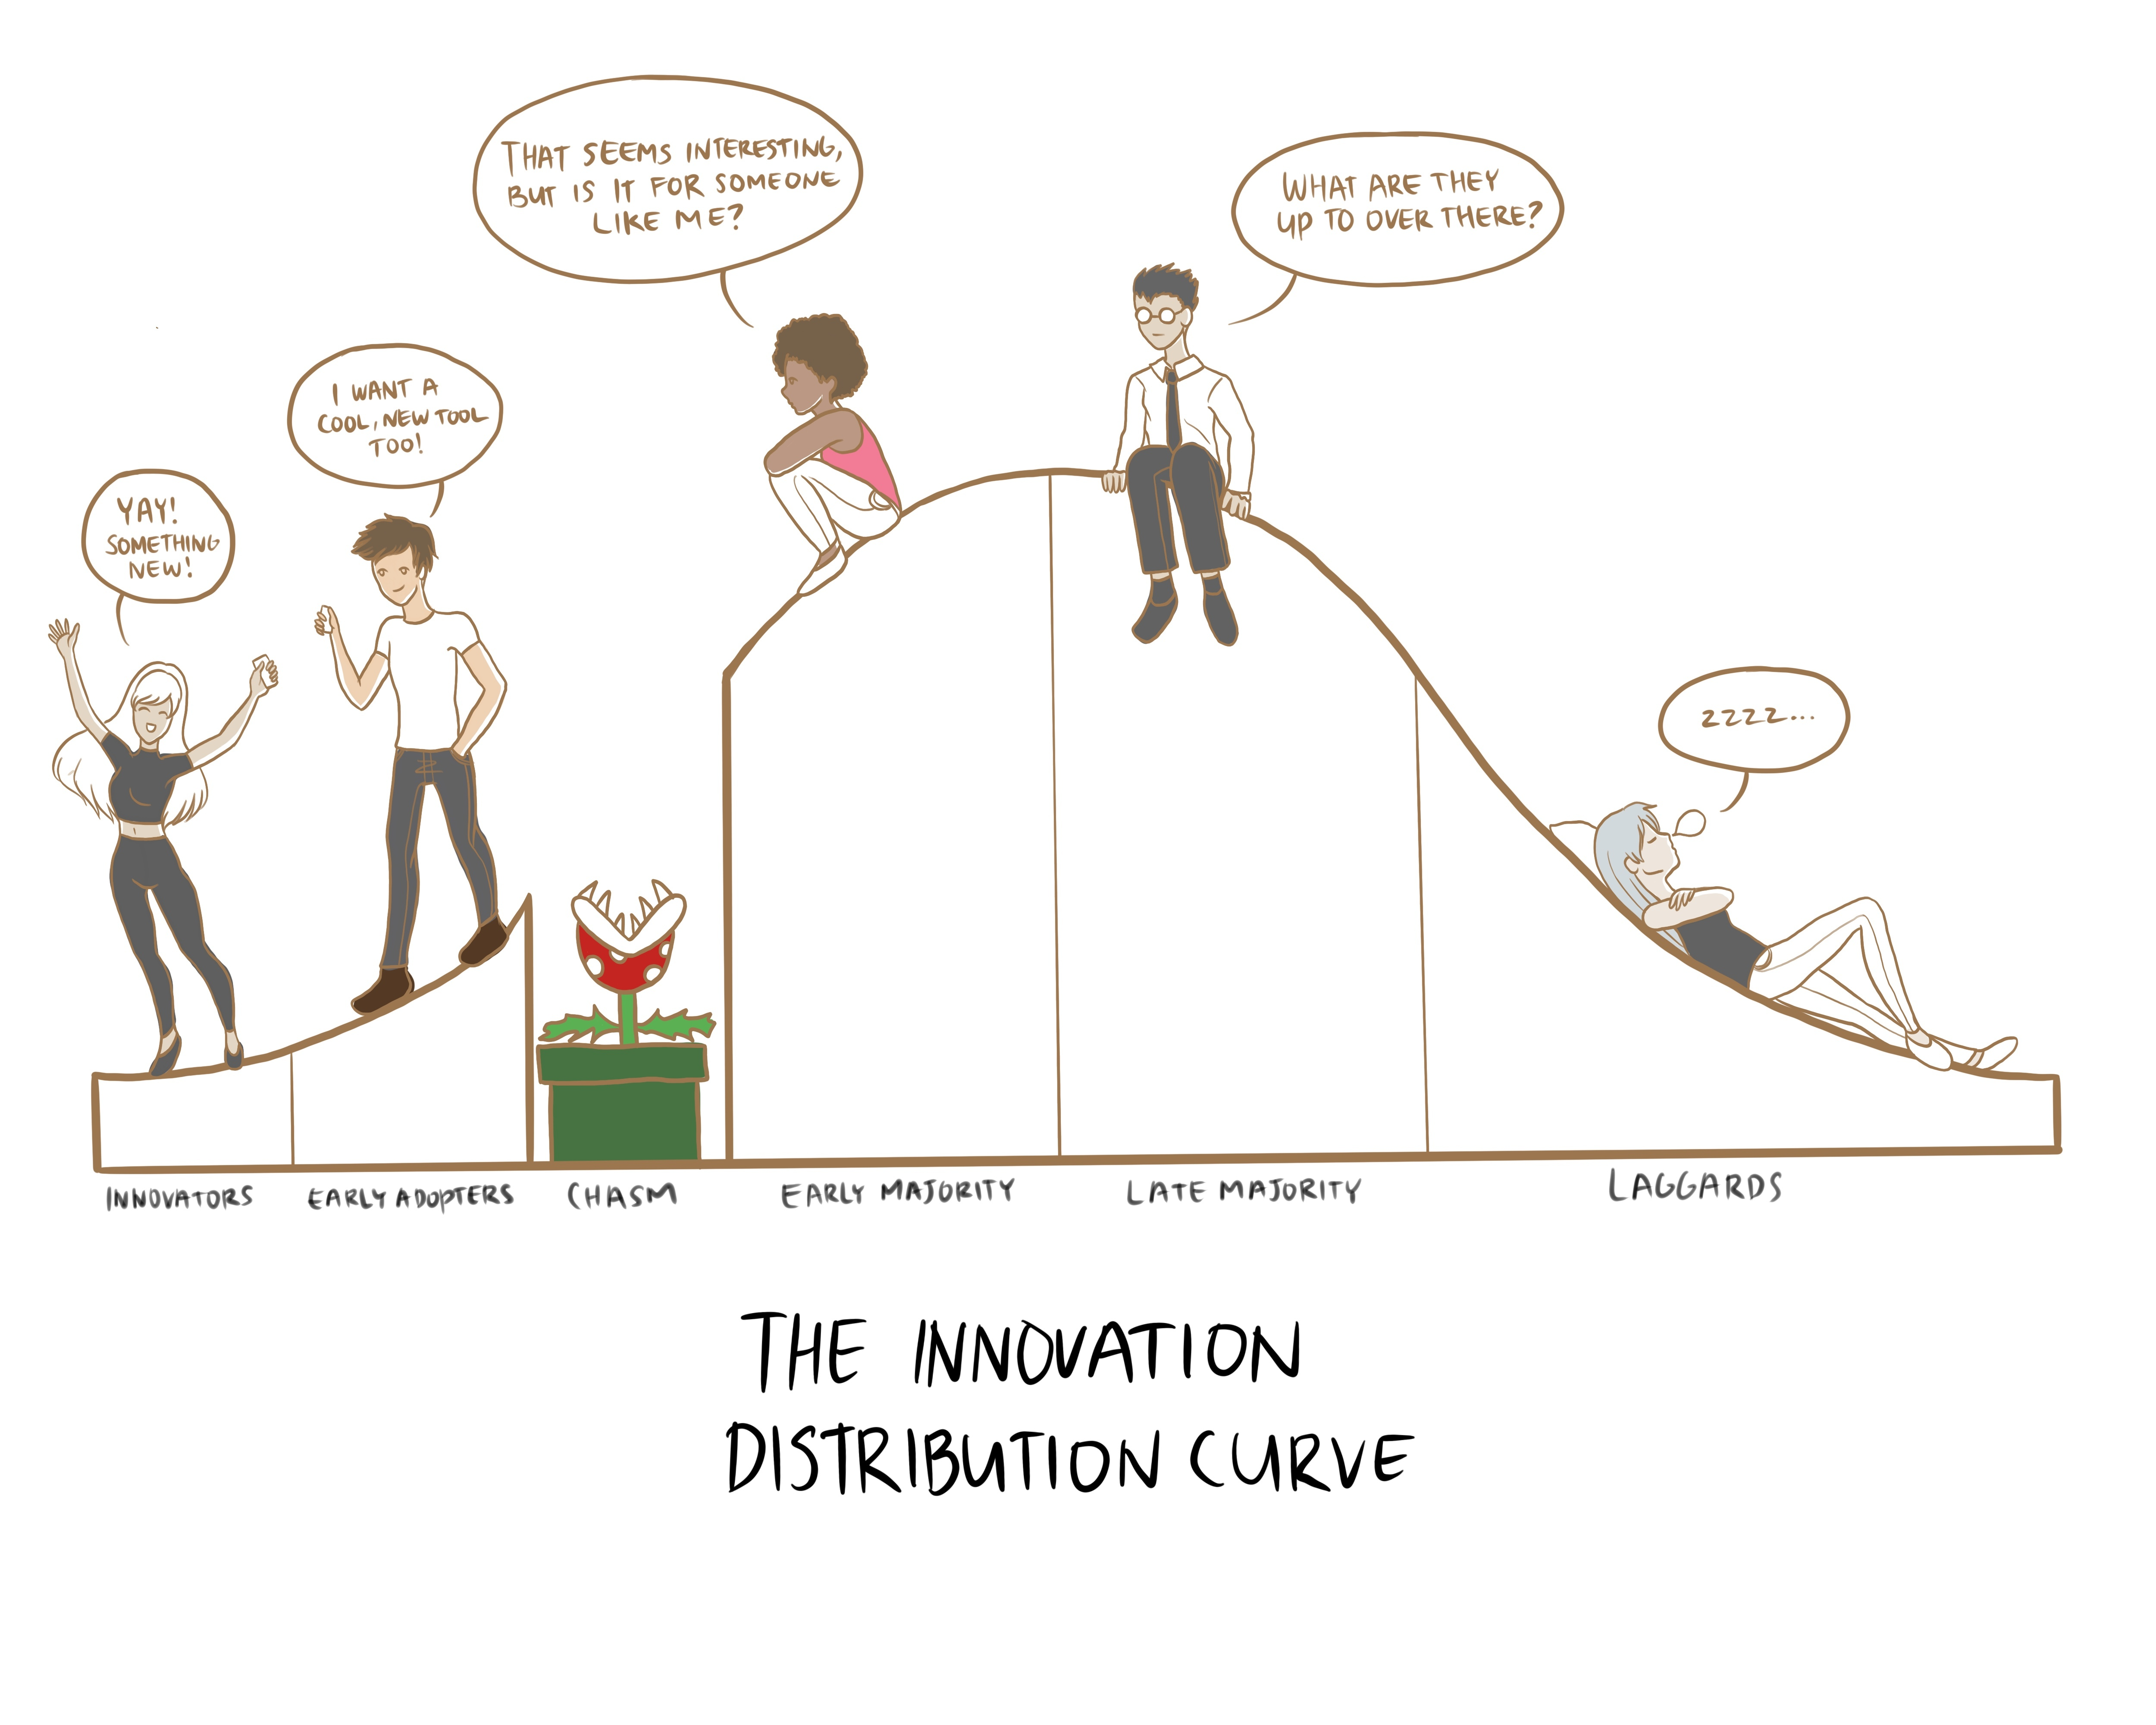 Crossing the chasm - innovation distribution curve